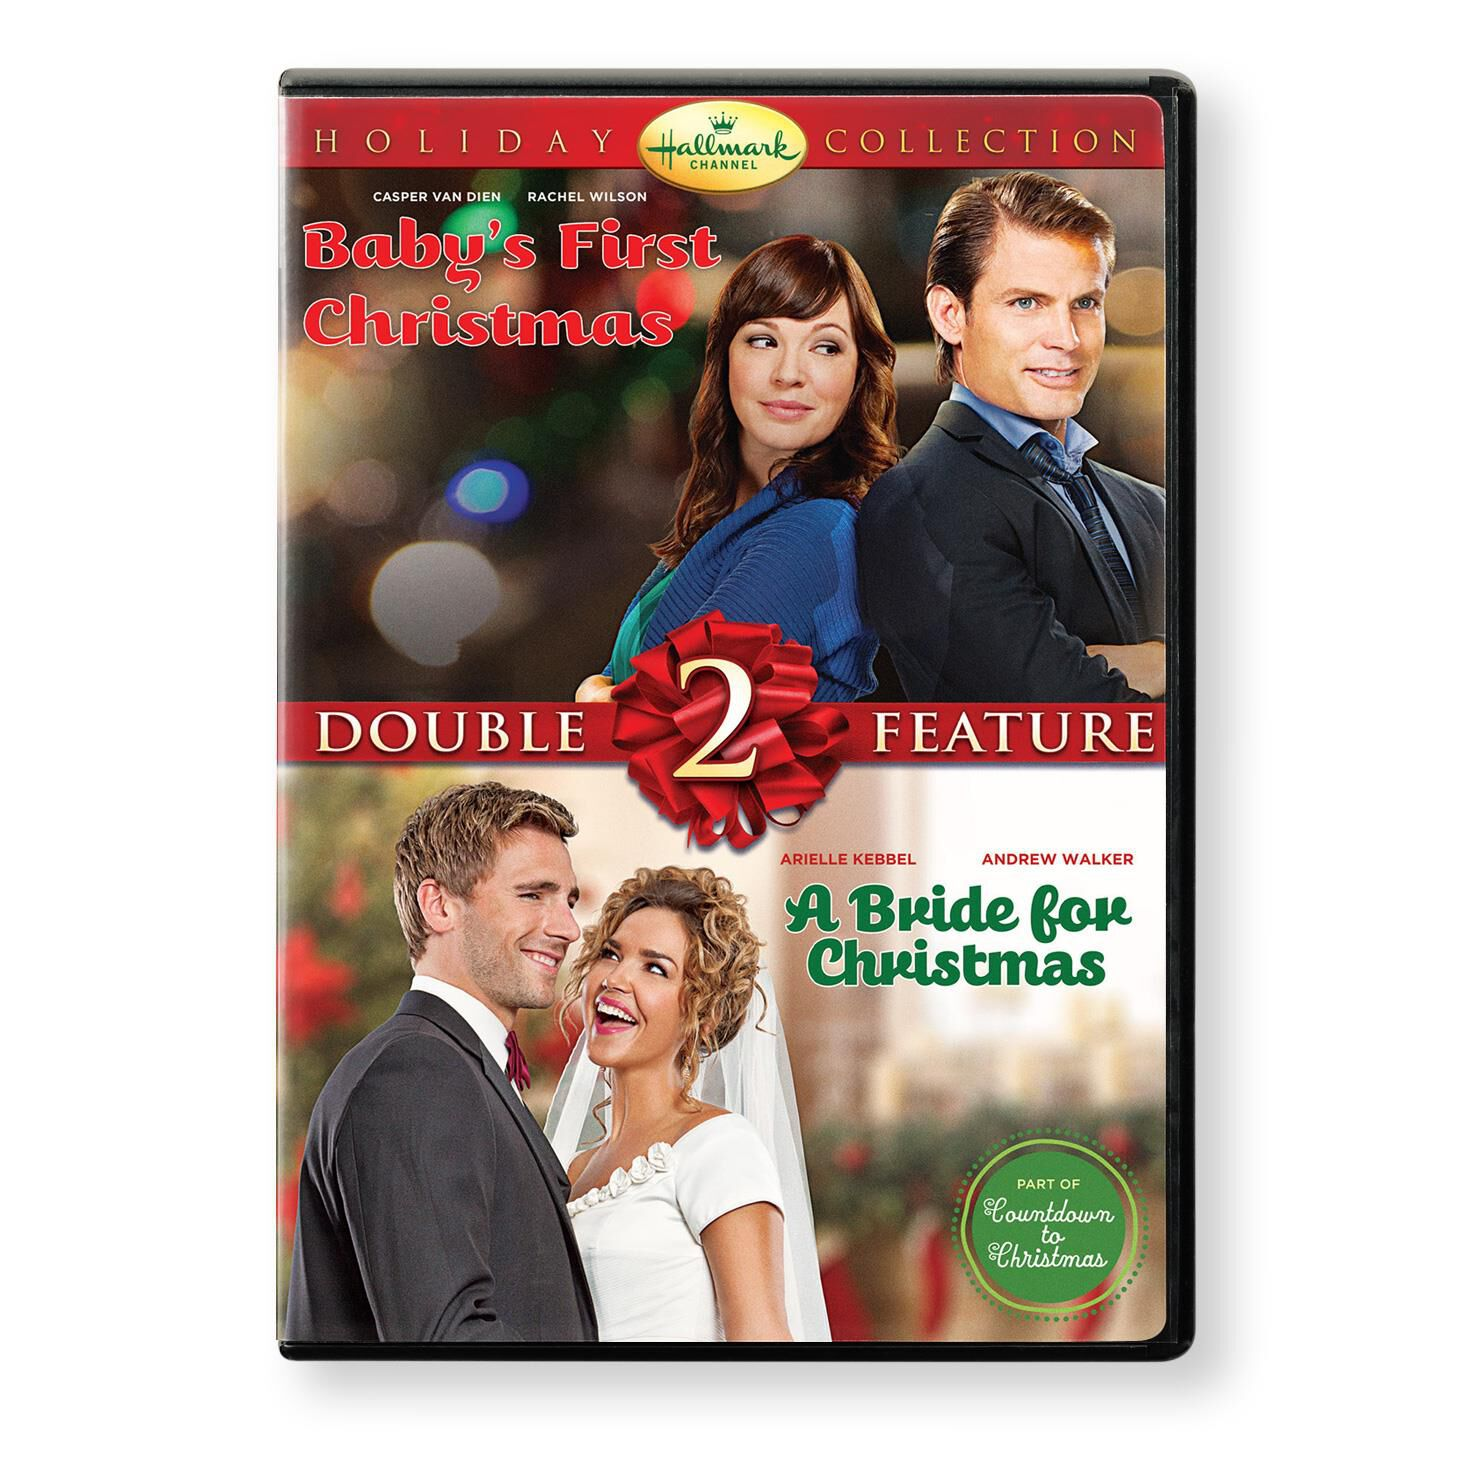 babys first christmas and a bride for christmas hallmark channel dvd set hallmark channel hallmark